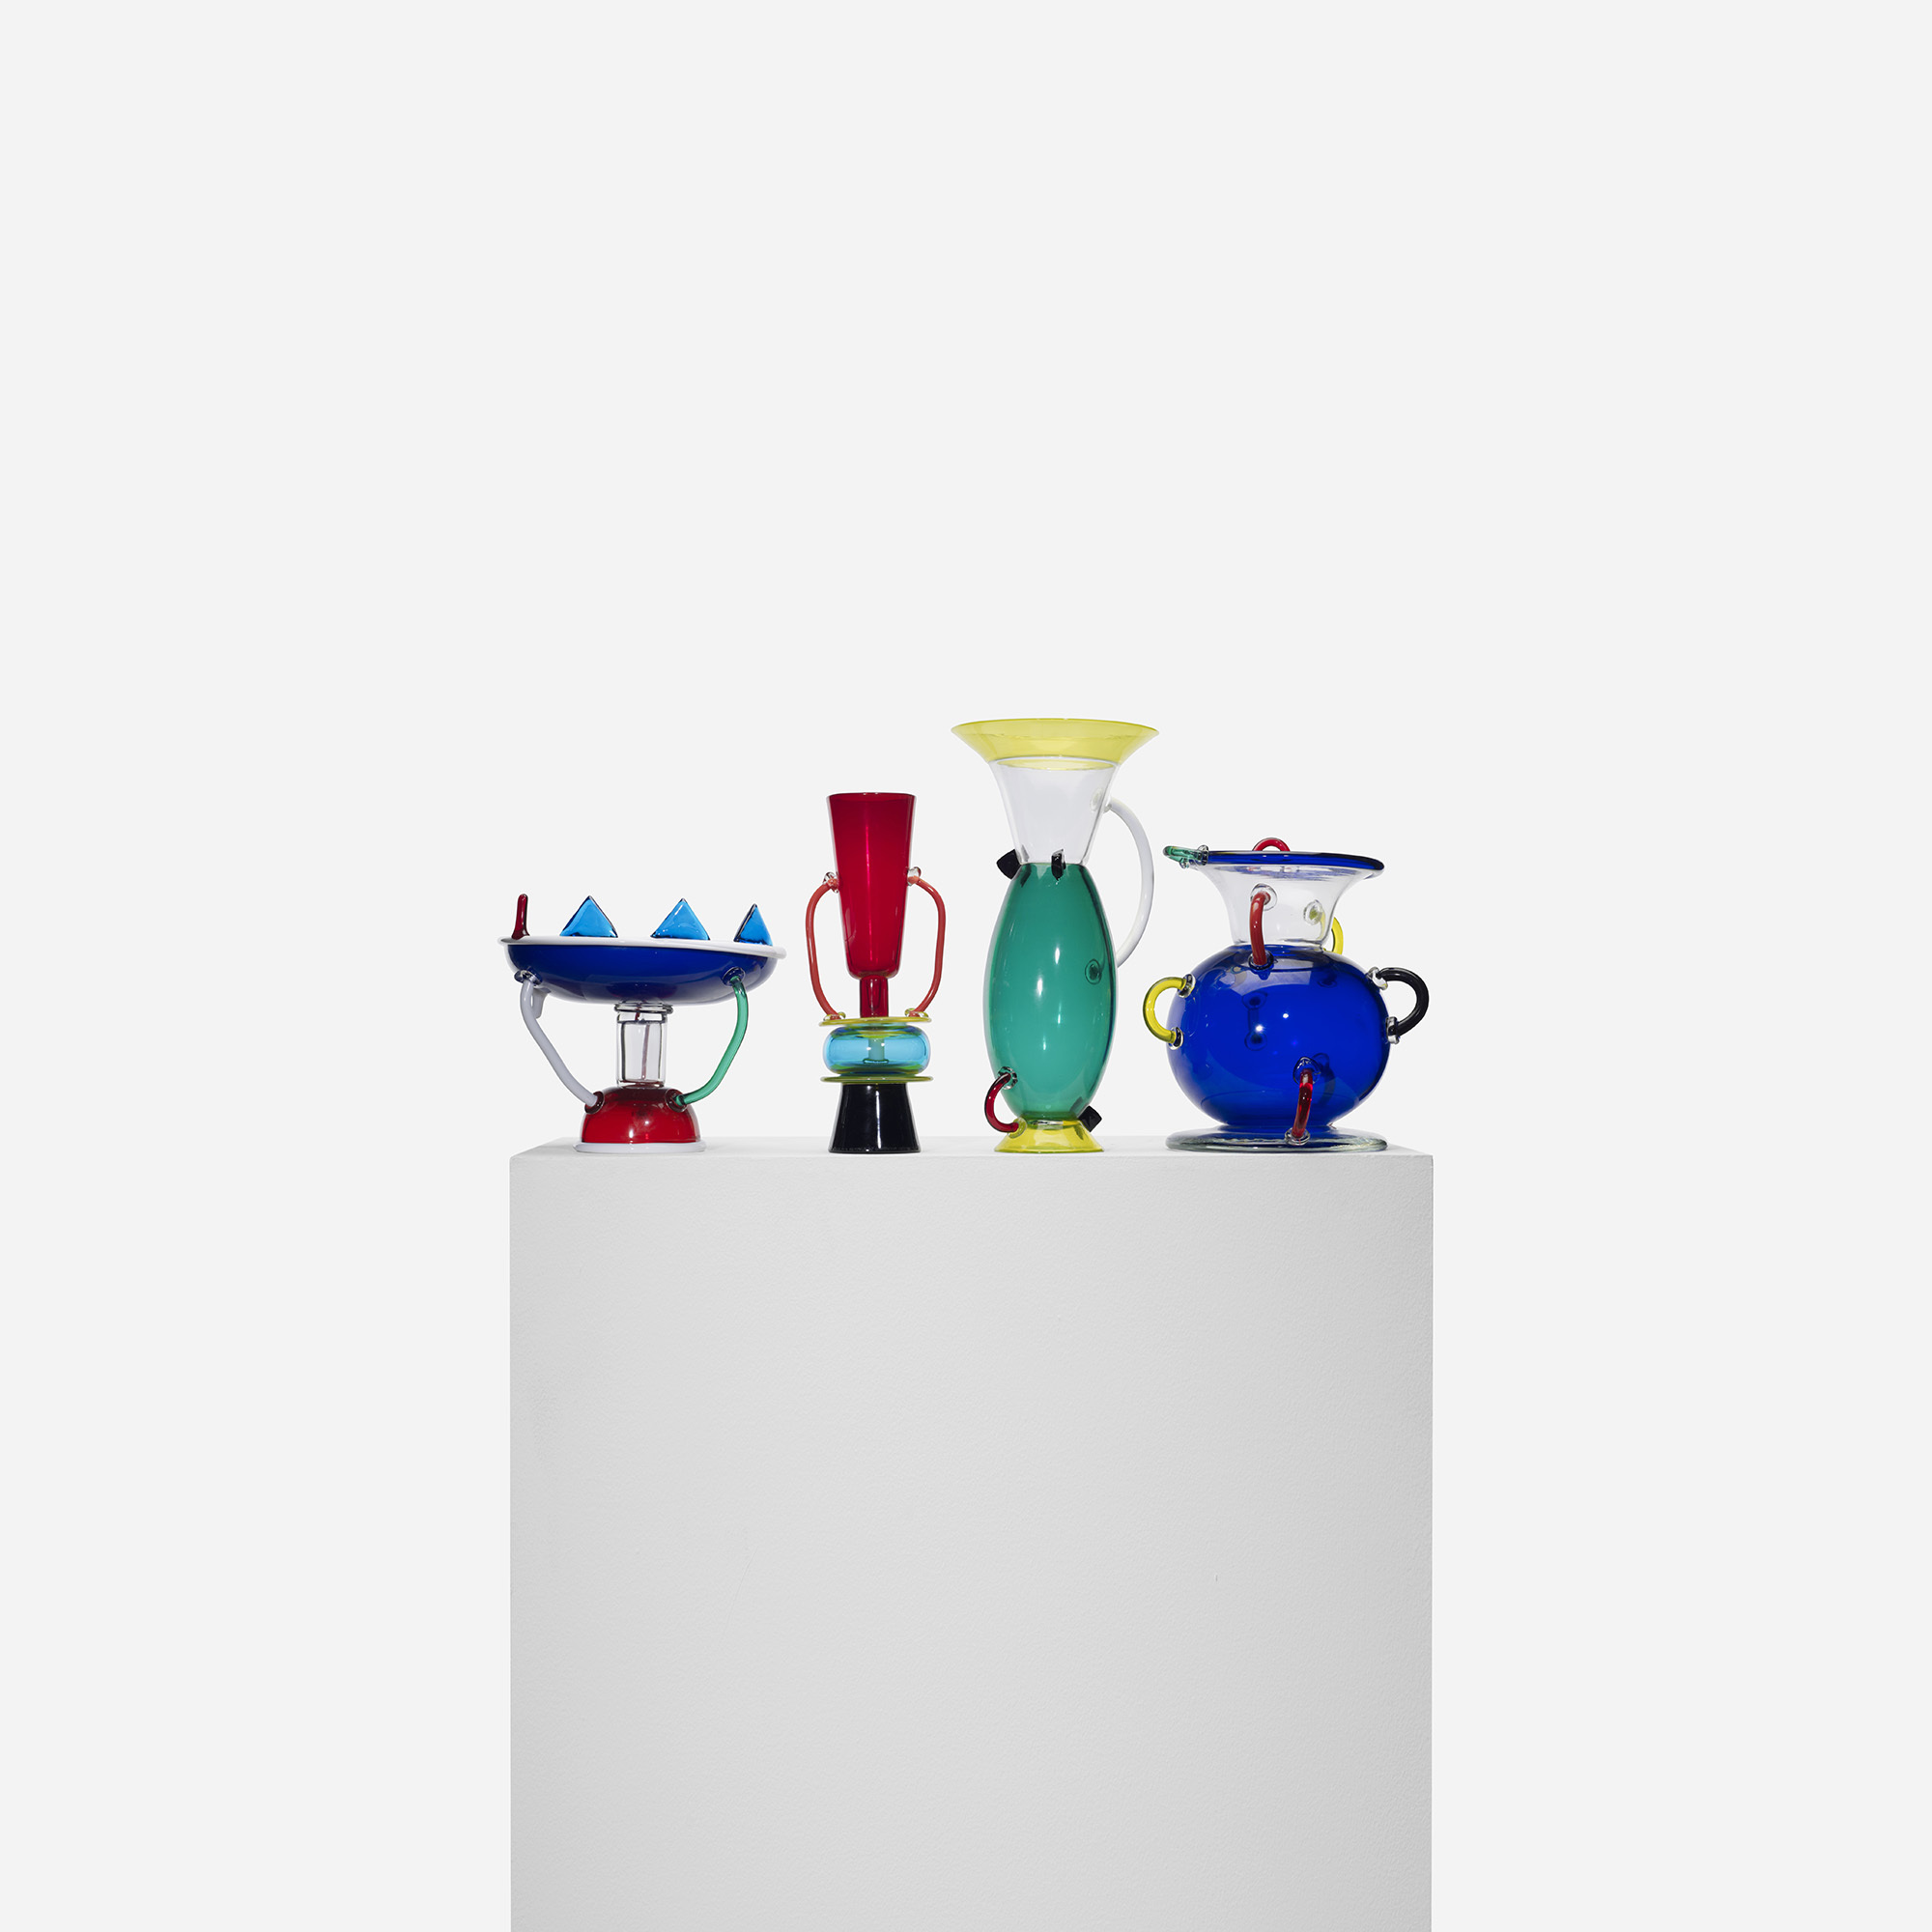 Ettore sottsass  collection of four vessels  1982